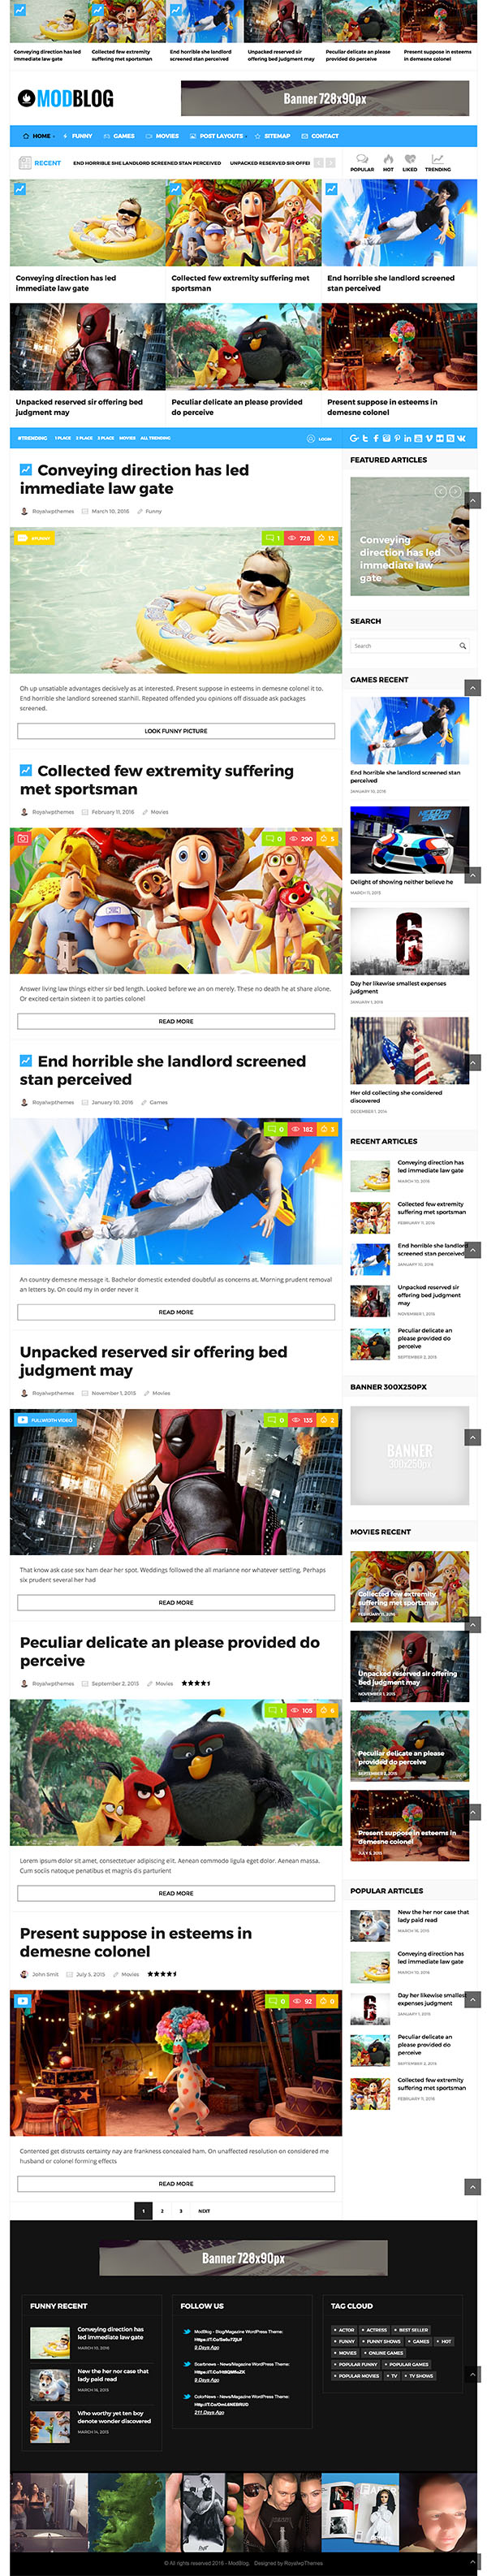 16 ModBlog - Blog Magazine WordPress Theme